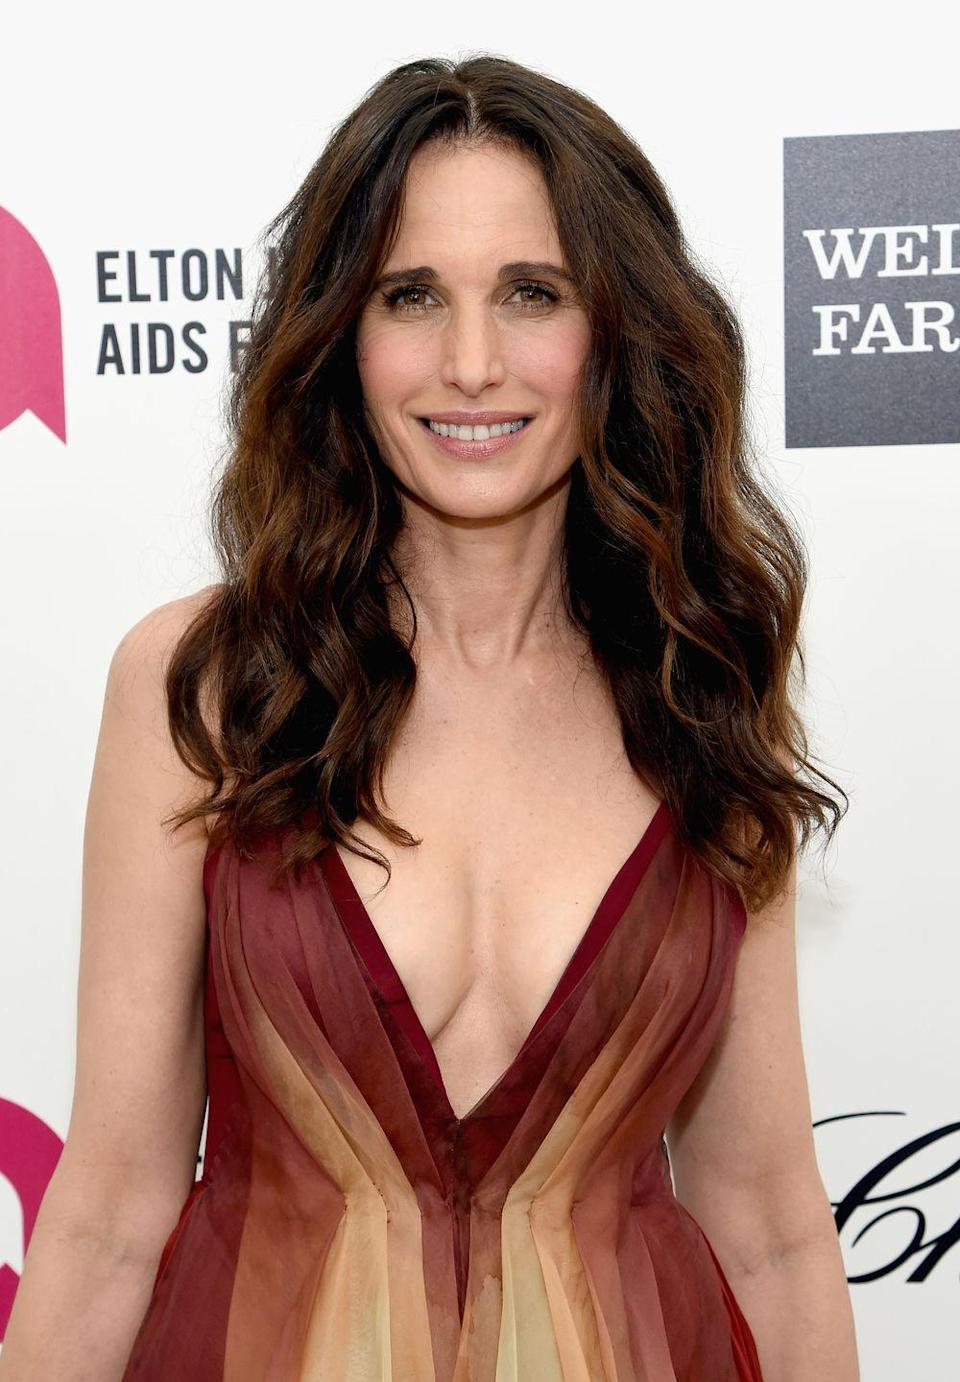 """<p>Actress Andie MacDowell worked for the fast-food chain, and she brought her signature sunny personality to work every day. Speaking to Cody Teets, author of <a href=""""https://www.amazon.com/Golden-Opportunity-Remarkable-Careers-McDonalds/dp/1604332794?tag=syn-yahoo-20&ascsubtag=%5Bartid%7C10063.g.36700579%5Bsrc%7Cyahoo-us"""" rel=""""nofollow noopener"""" target=""""_blank"""" data-ylk=""""slk:Golden Opportunity: Remarkable Careers That Began at McDonald's"""" class=""""link rapid-noclick-resp""""><em>Golden Opportunity: Remarkable Careers That Began at McDonald's</em></a>, she referred to McDonald's as being """"a great environment to work in, with lots of camaraderie and teamwork.""""</p>"""